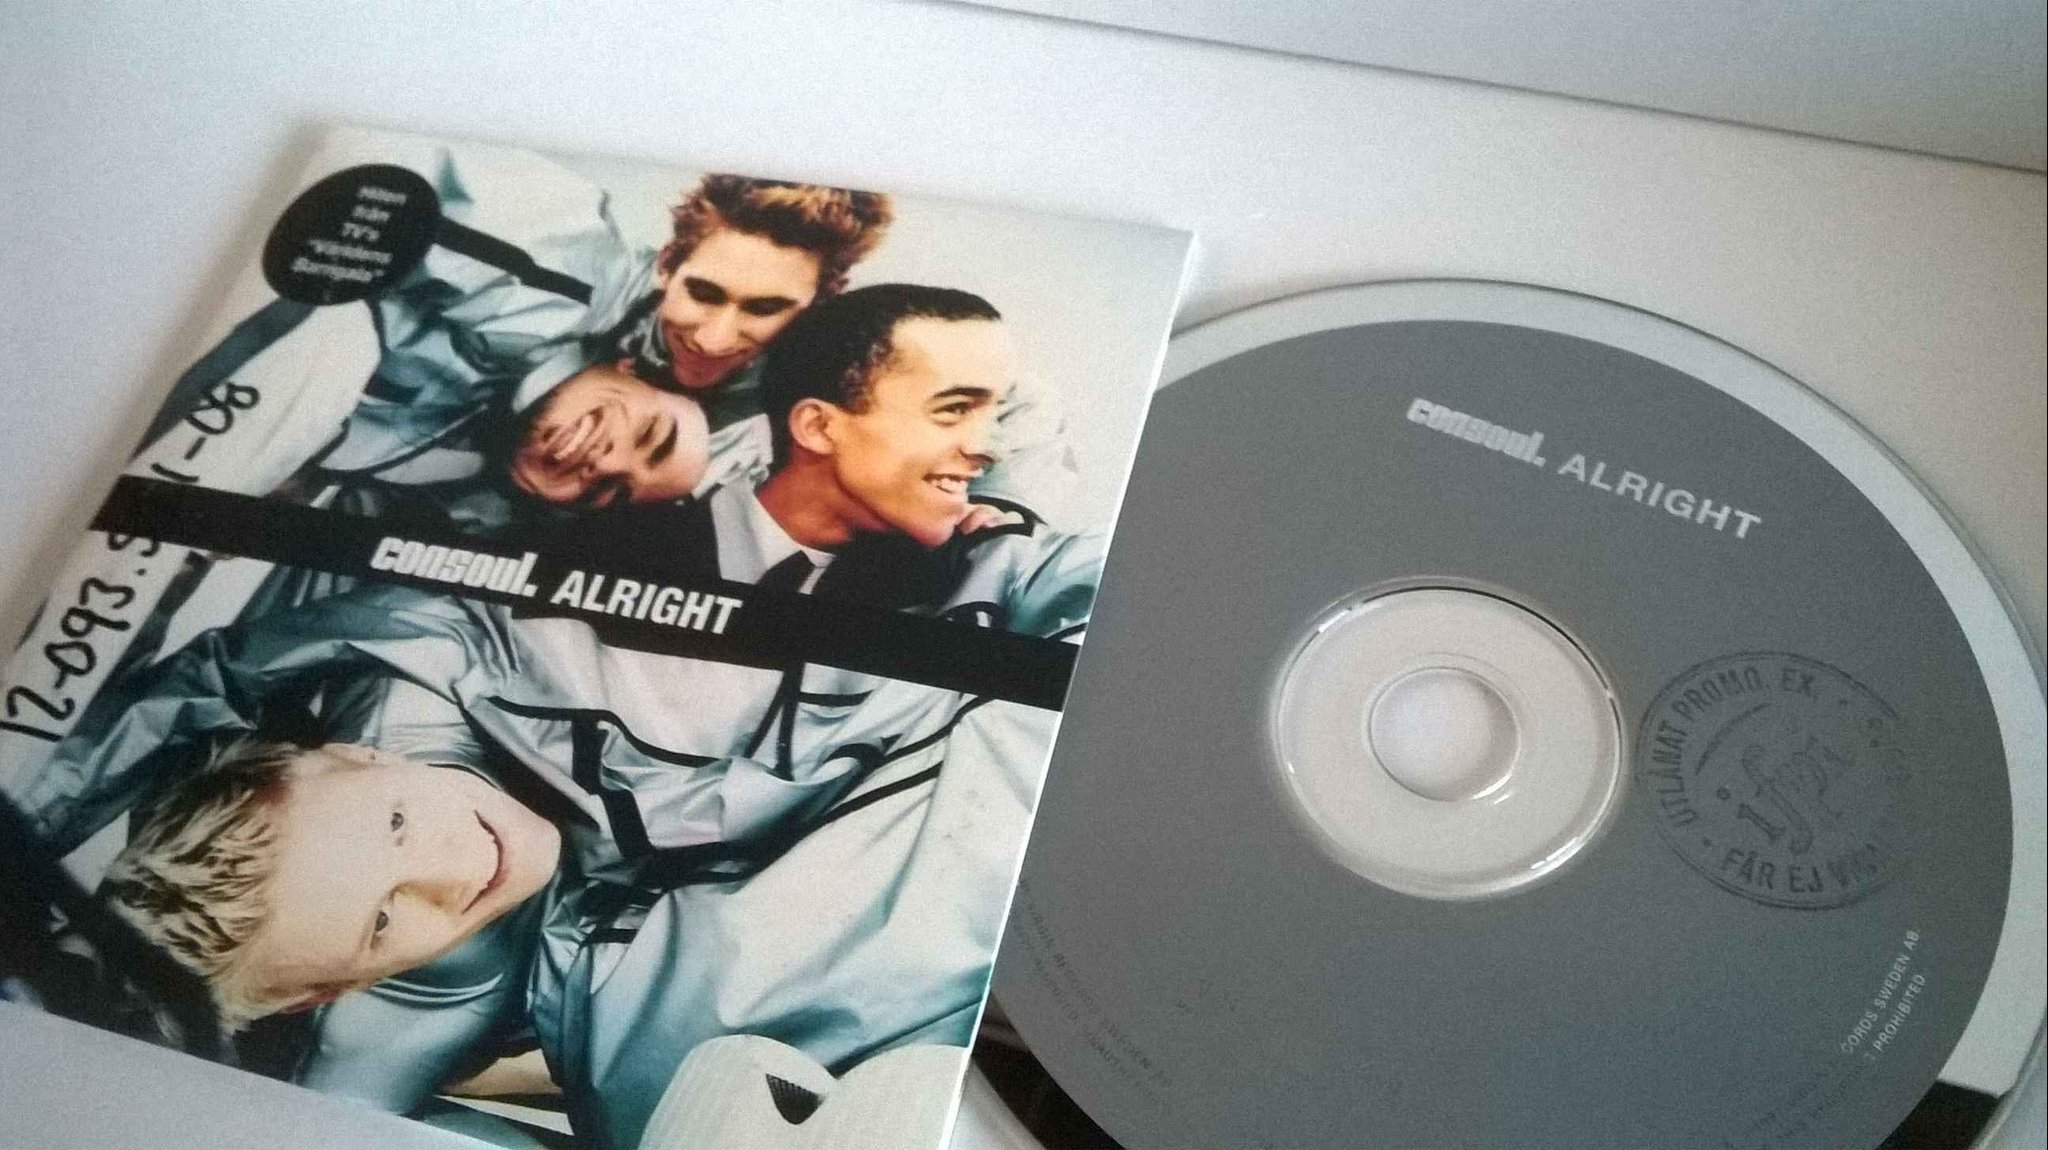 Consoul - Alright, single CD, promo stämplad, rare!